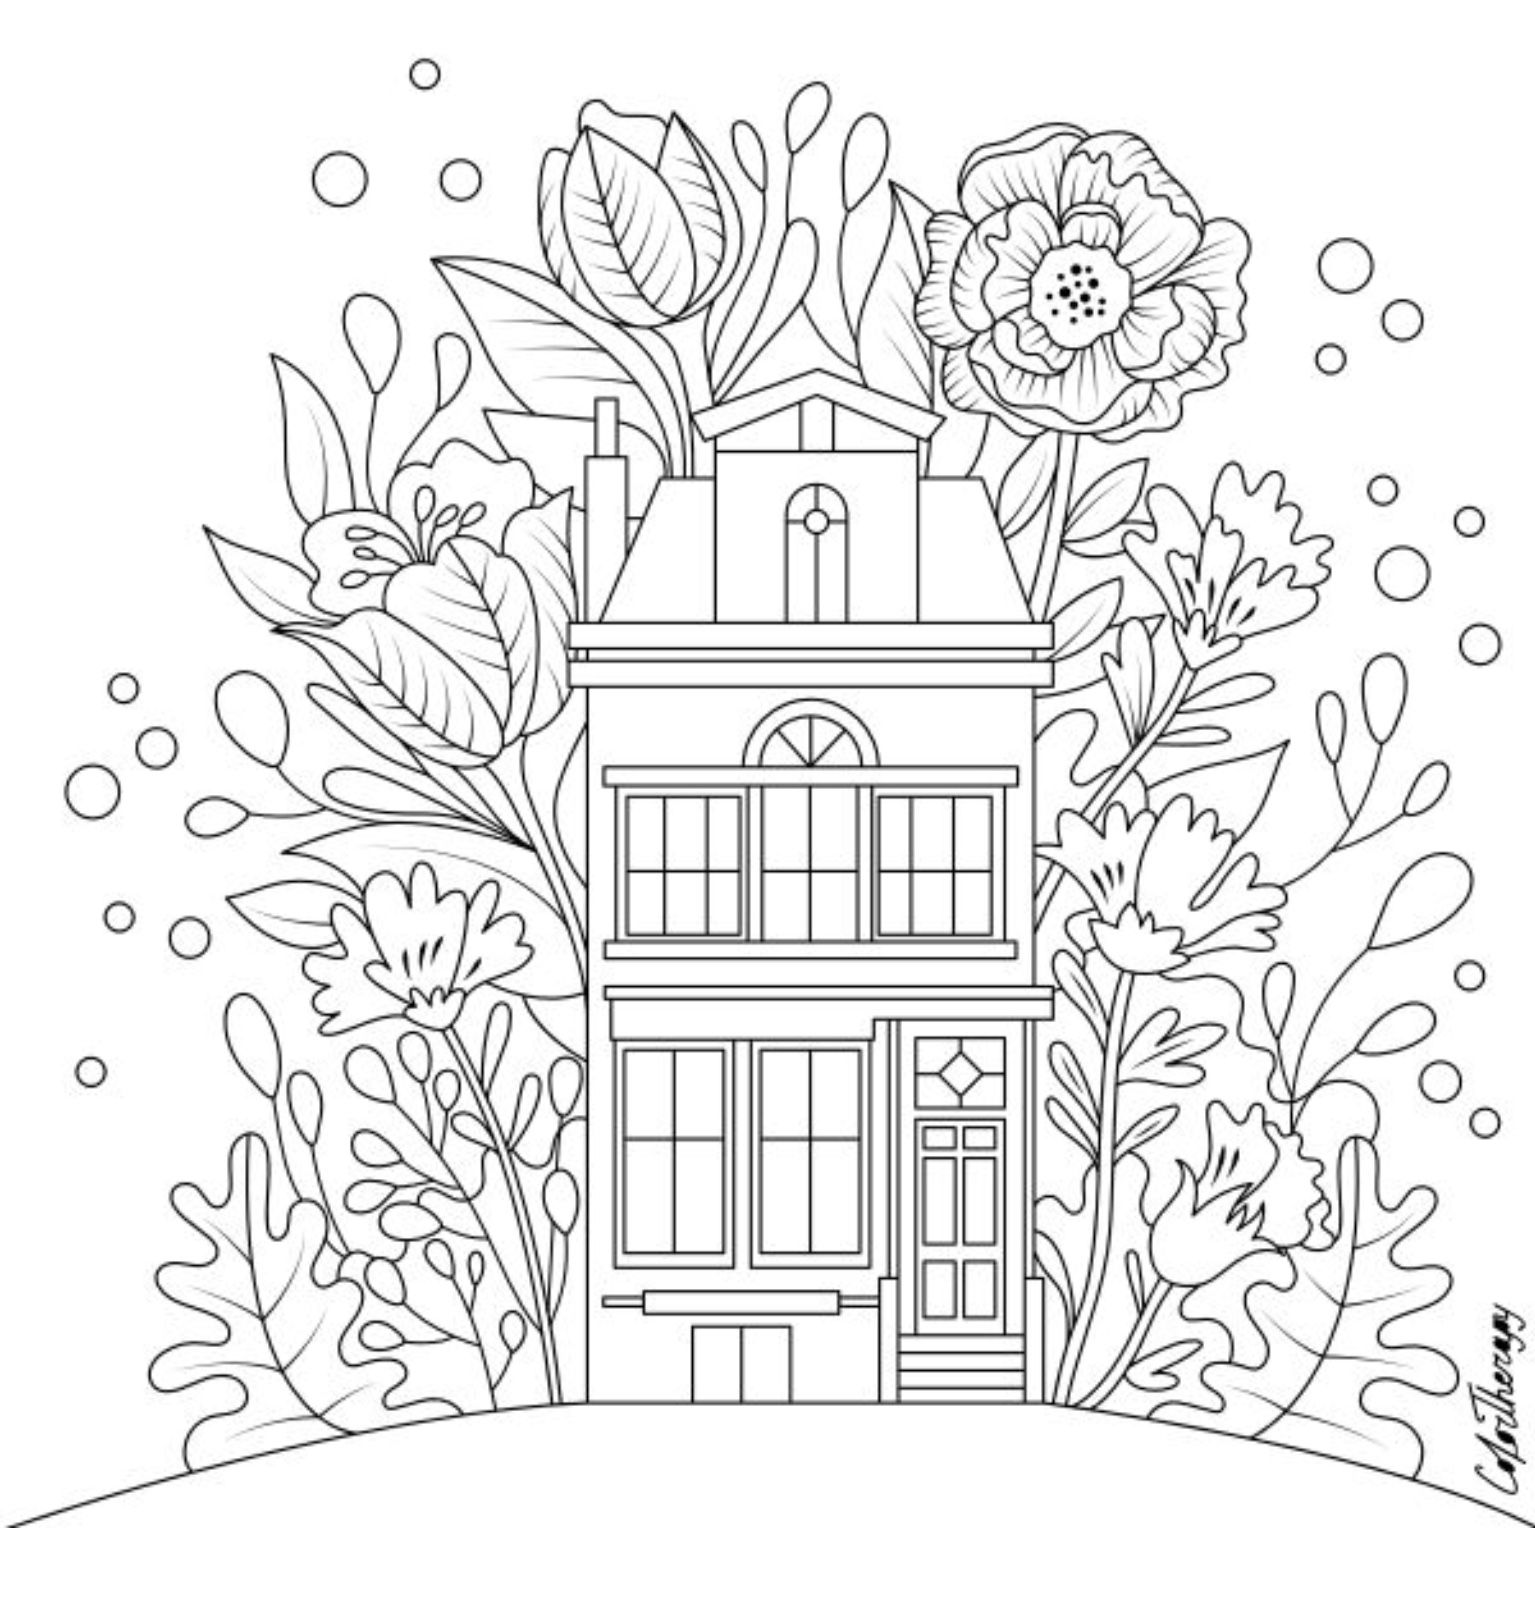 The Sneakpeek For The Next Gift Of The Day Tomorrow Do You Like This One House With Flowers With Images Cute Coloring Pages Color Therapy App Coloring Pages